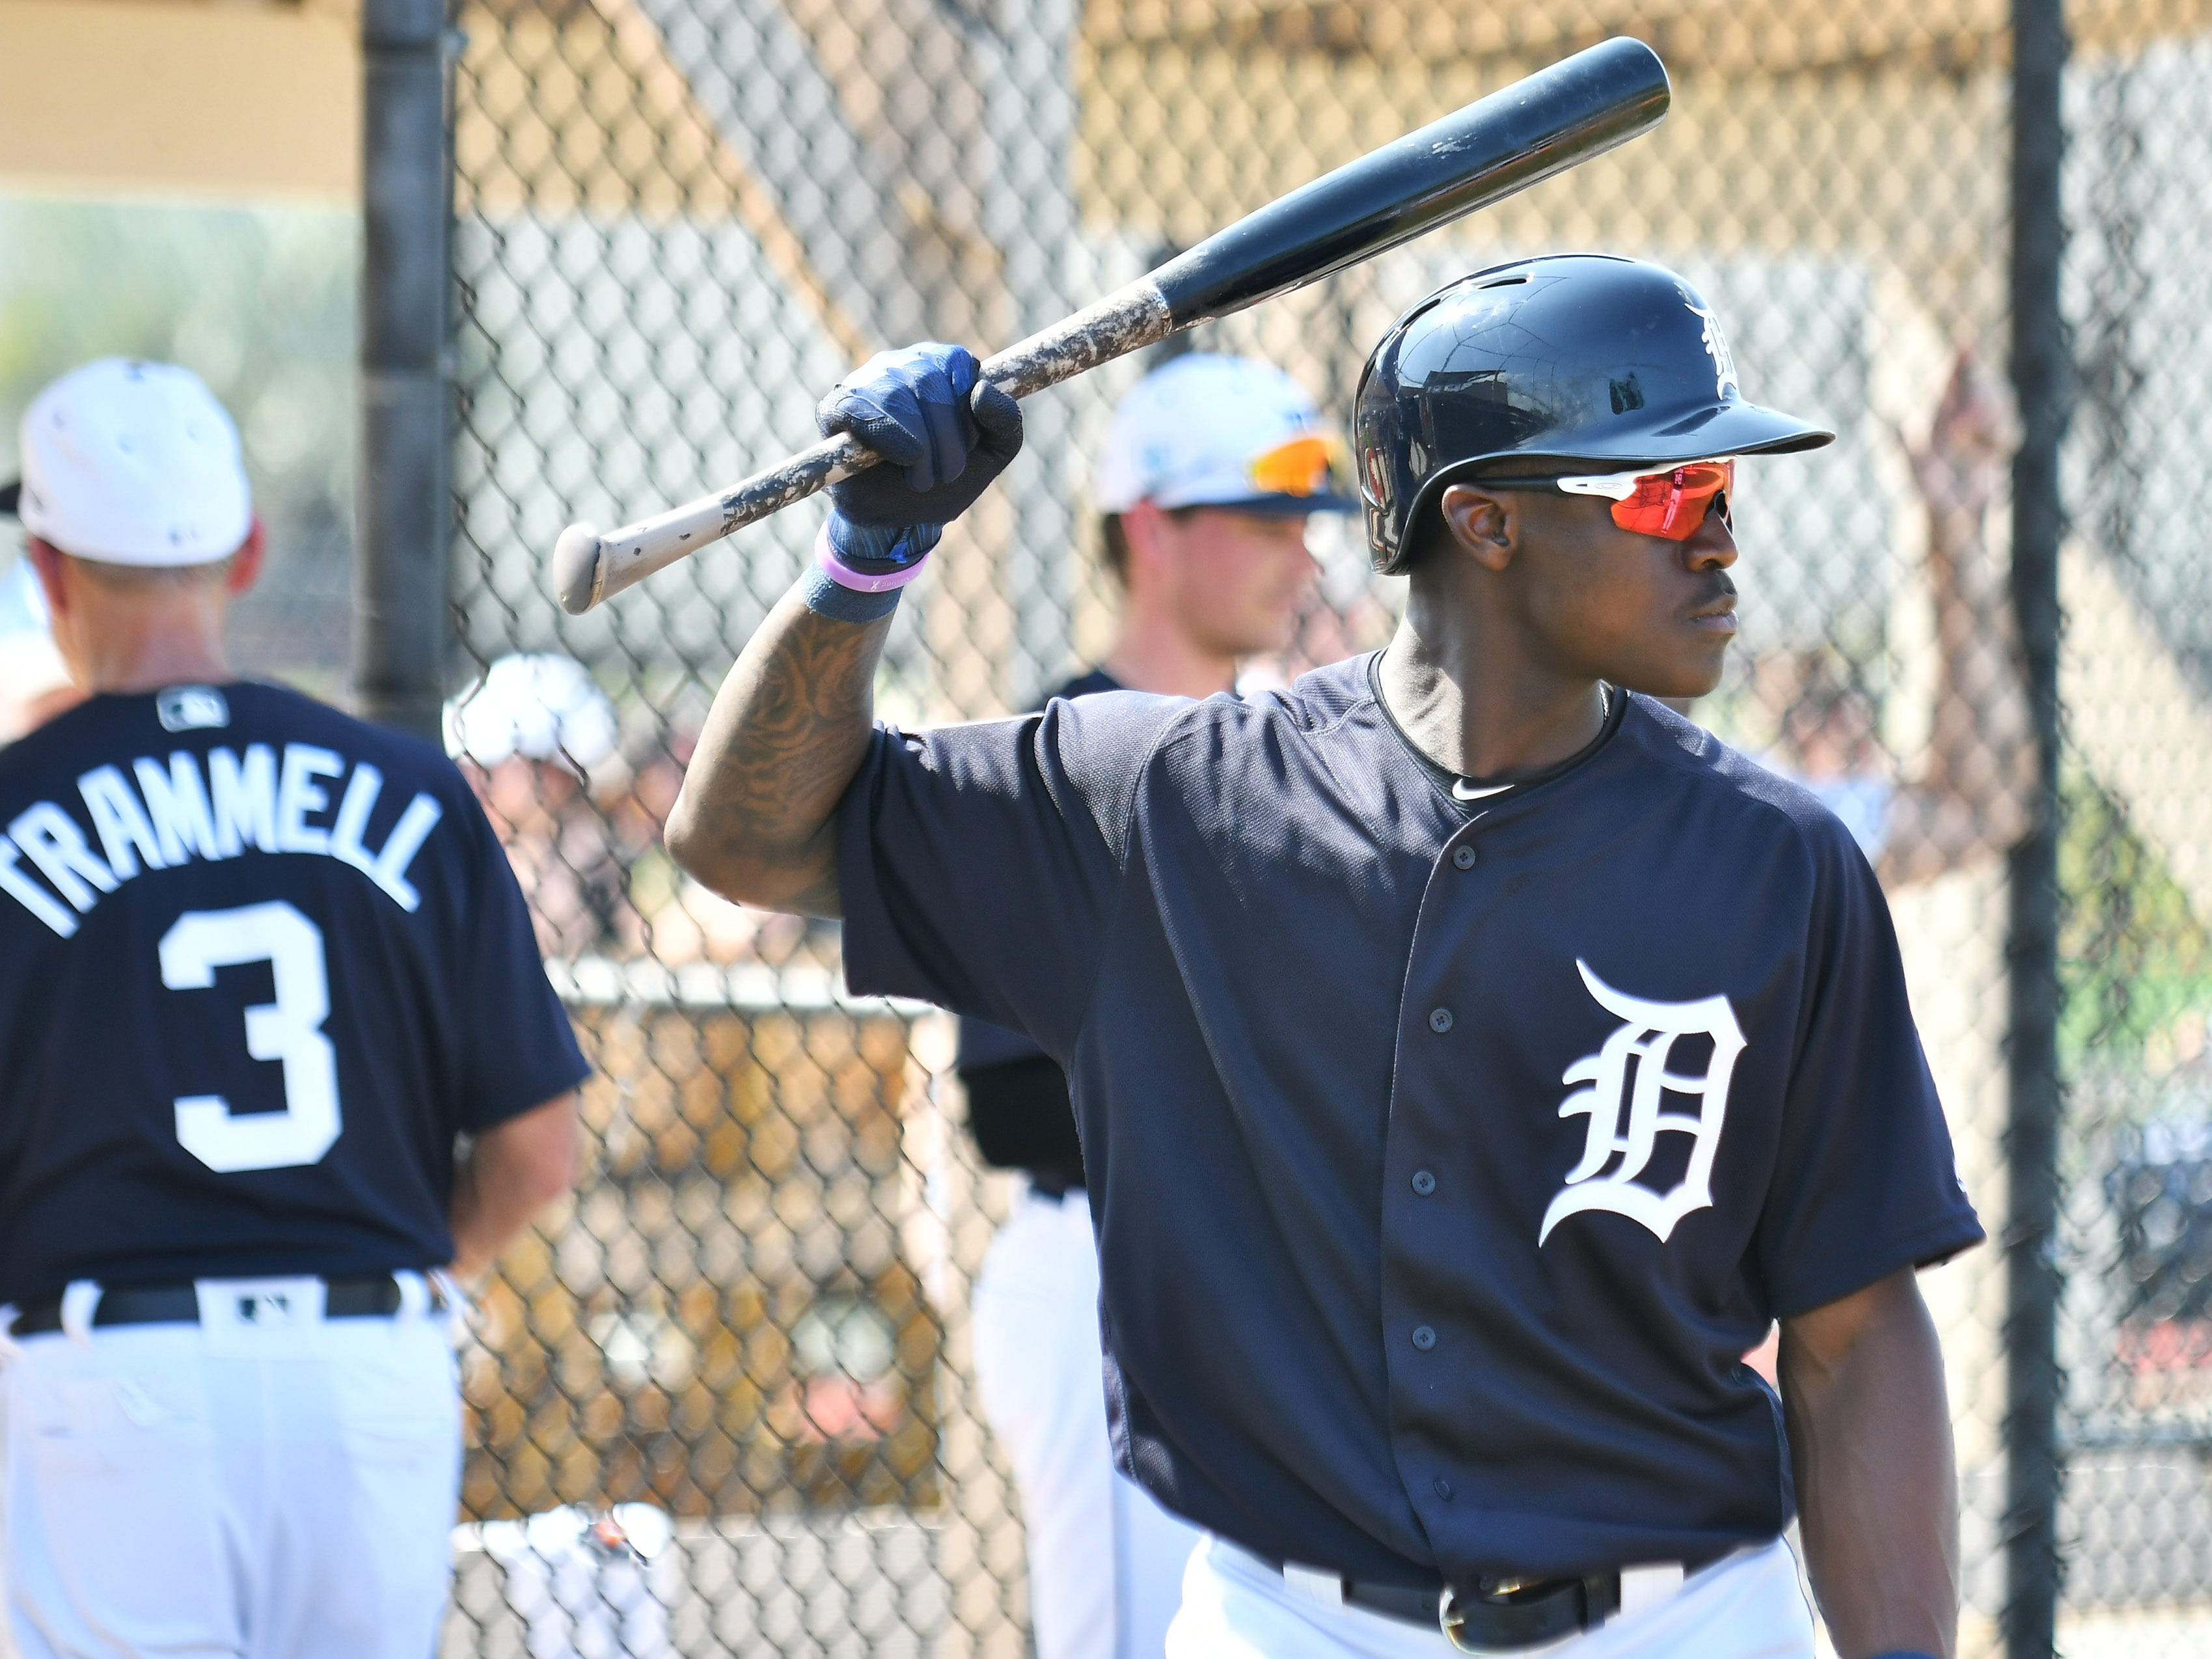 Tigers non-roster invitee Daz Cameron gets ready for batting practice.